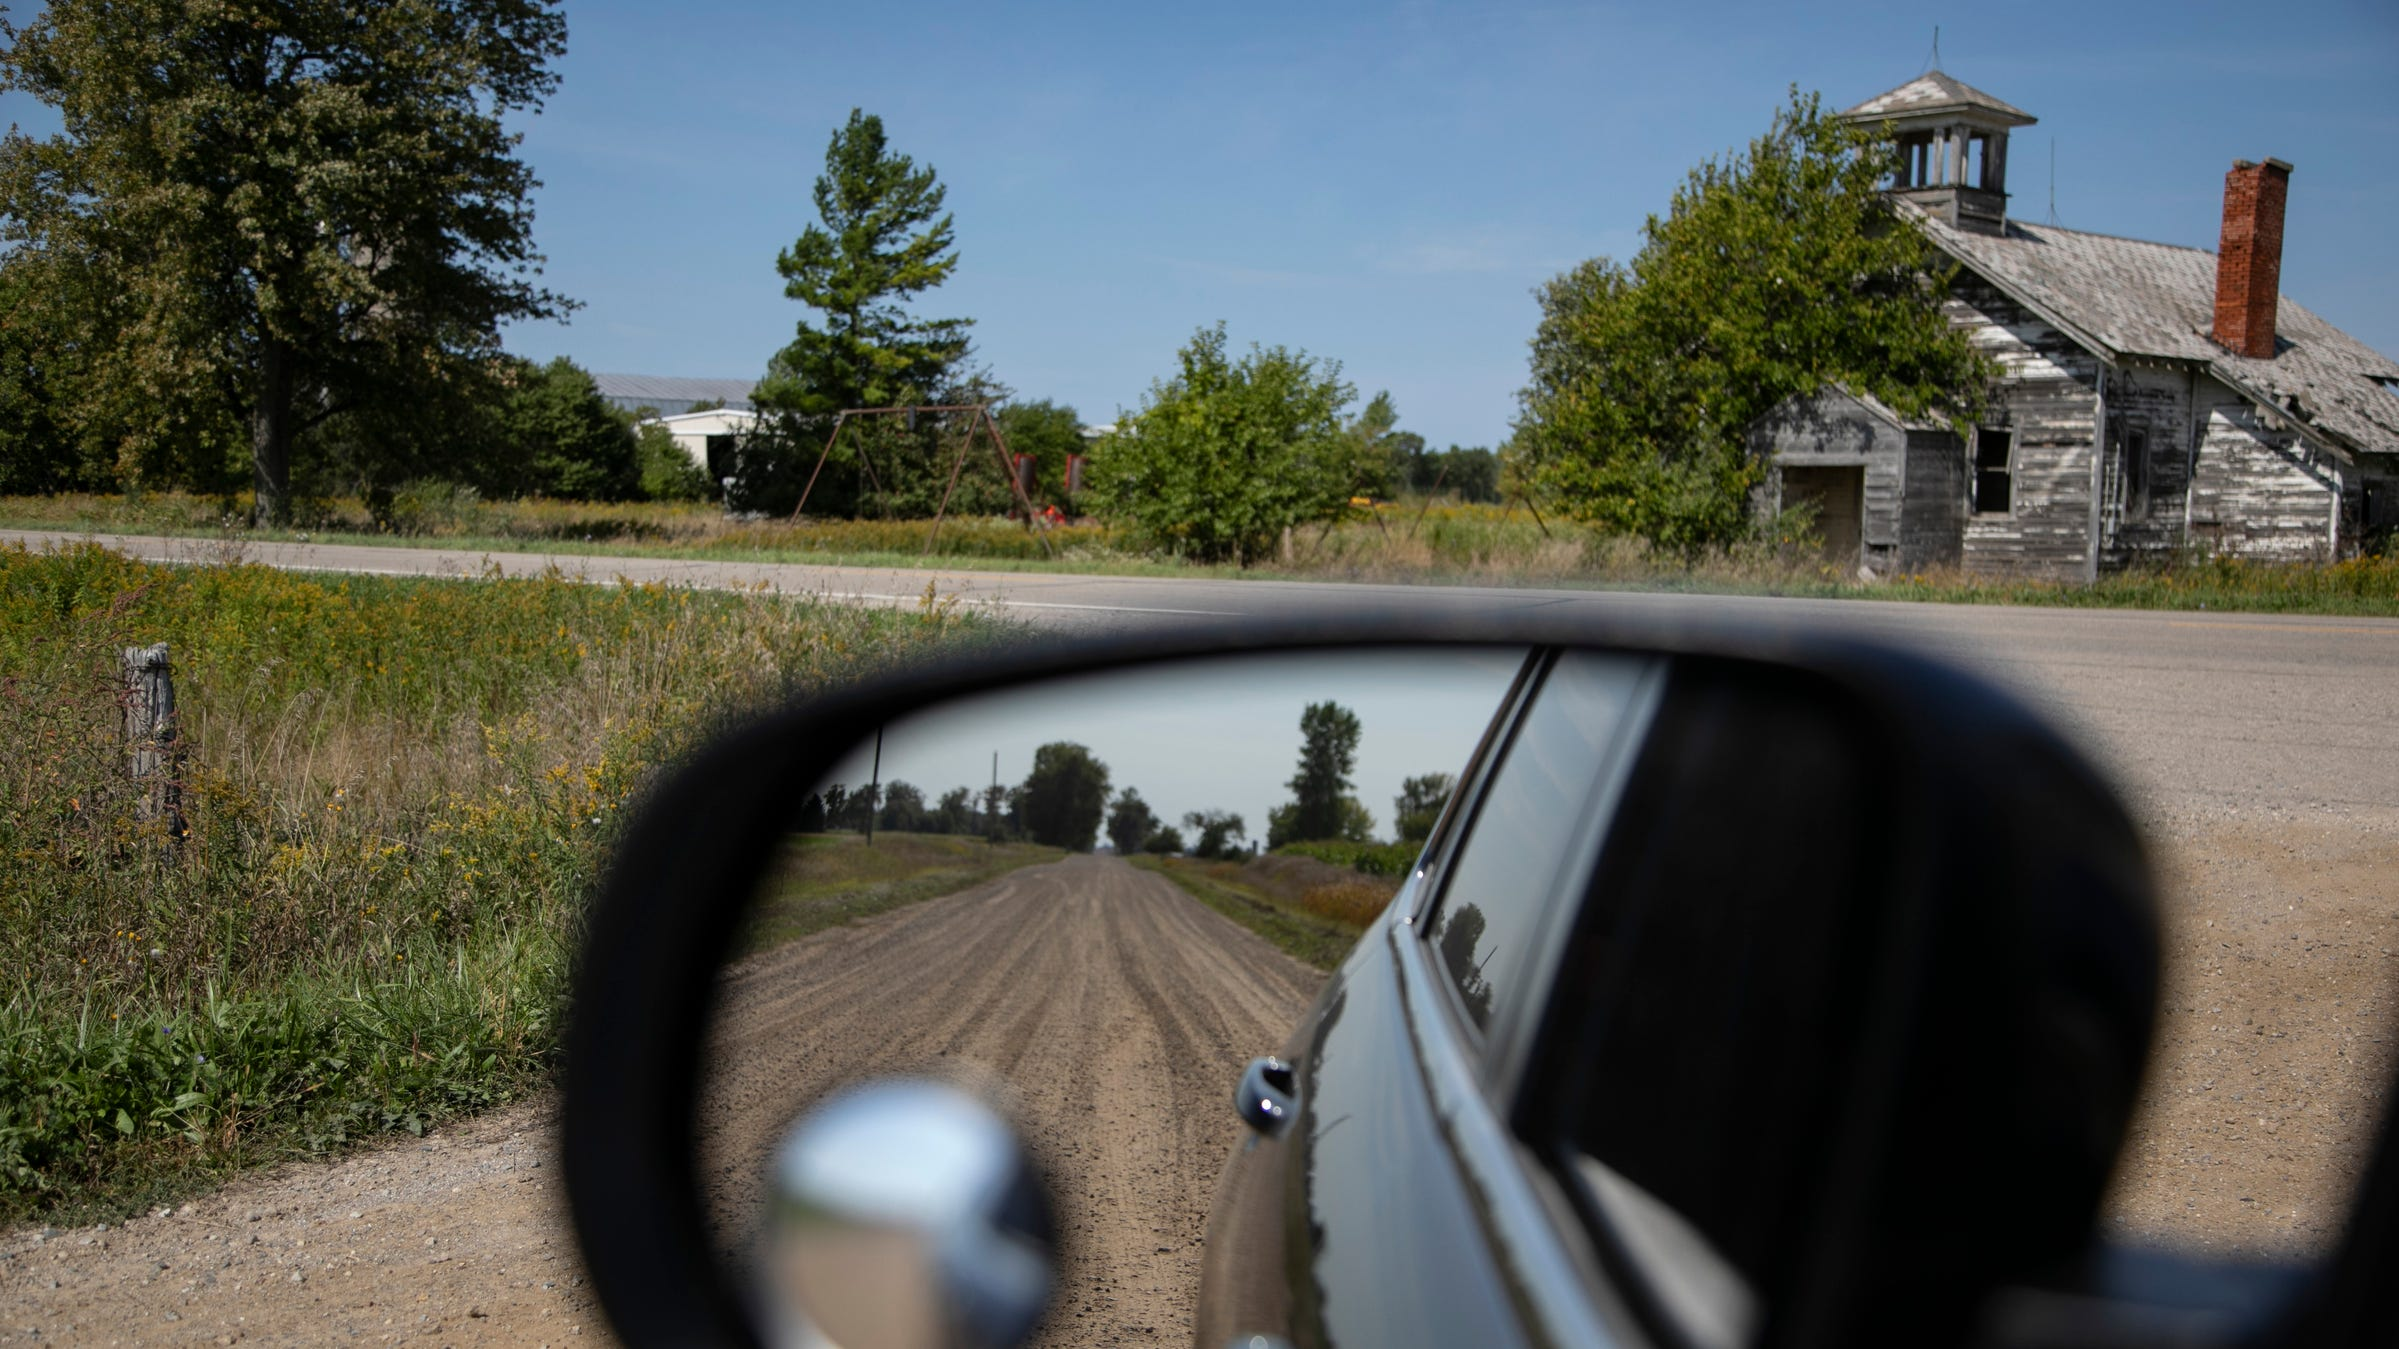 Michigan Rural Poverty Relentless Aging Few Job Or Education Options